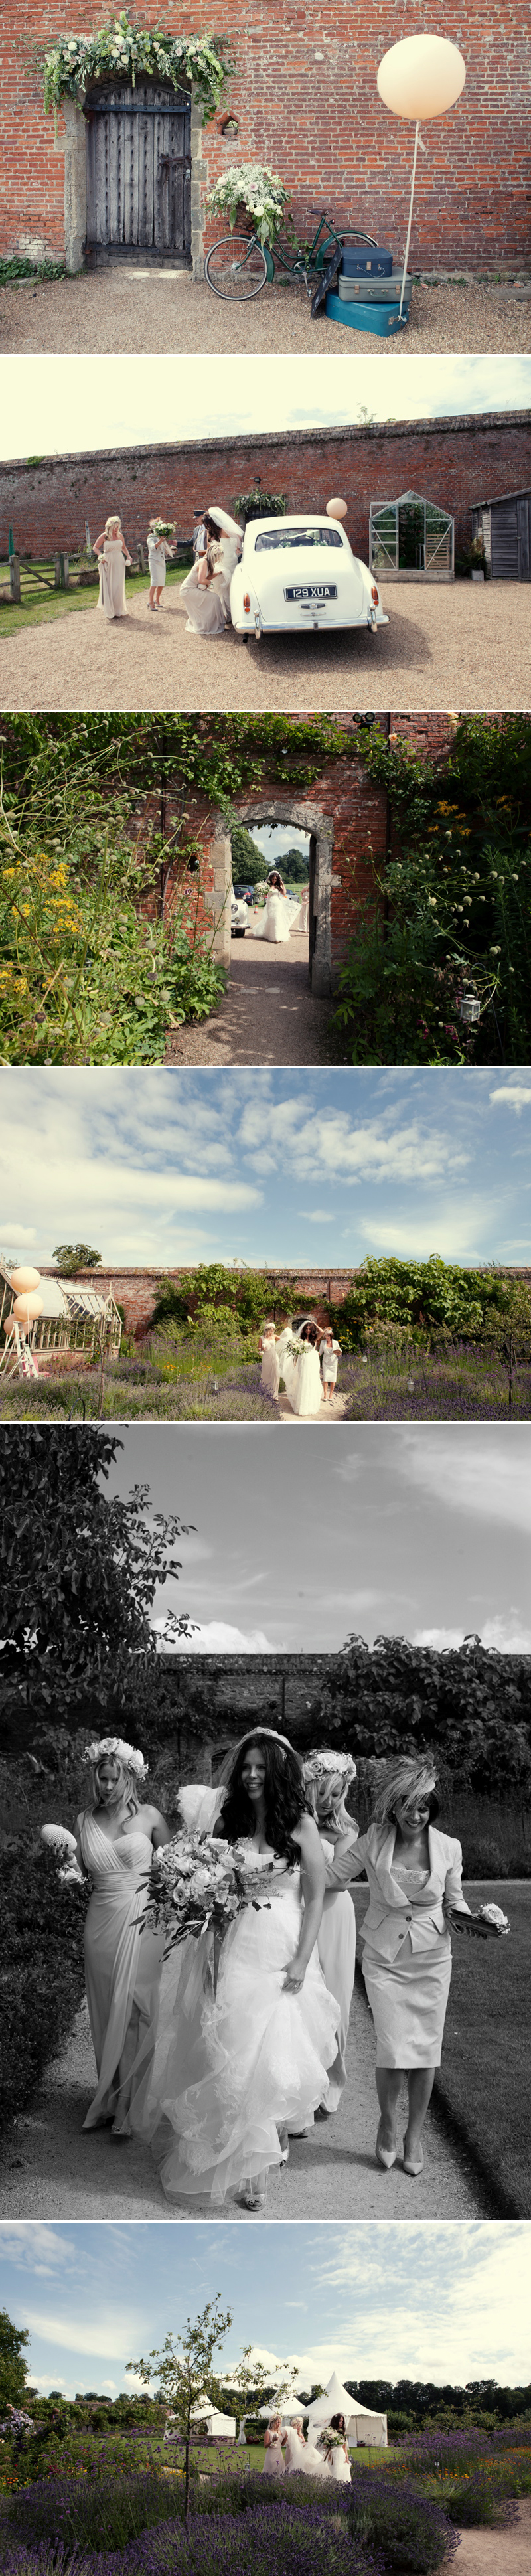 Coco Wedding Venues - Real Love - Mark and Emma - Images by Horseshoe Photography.